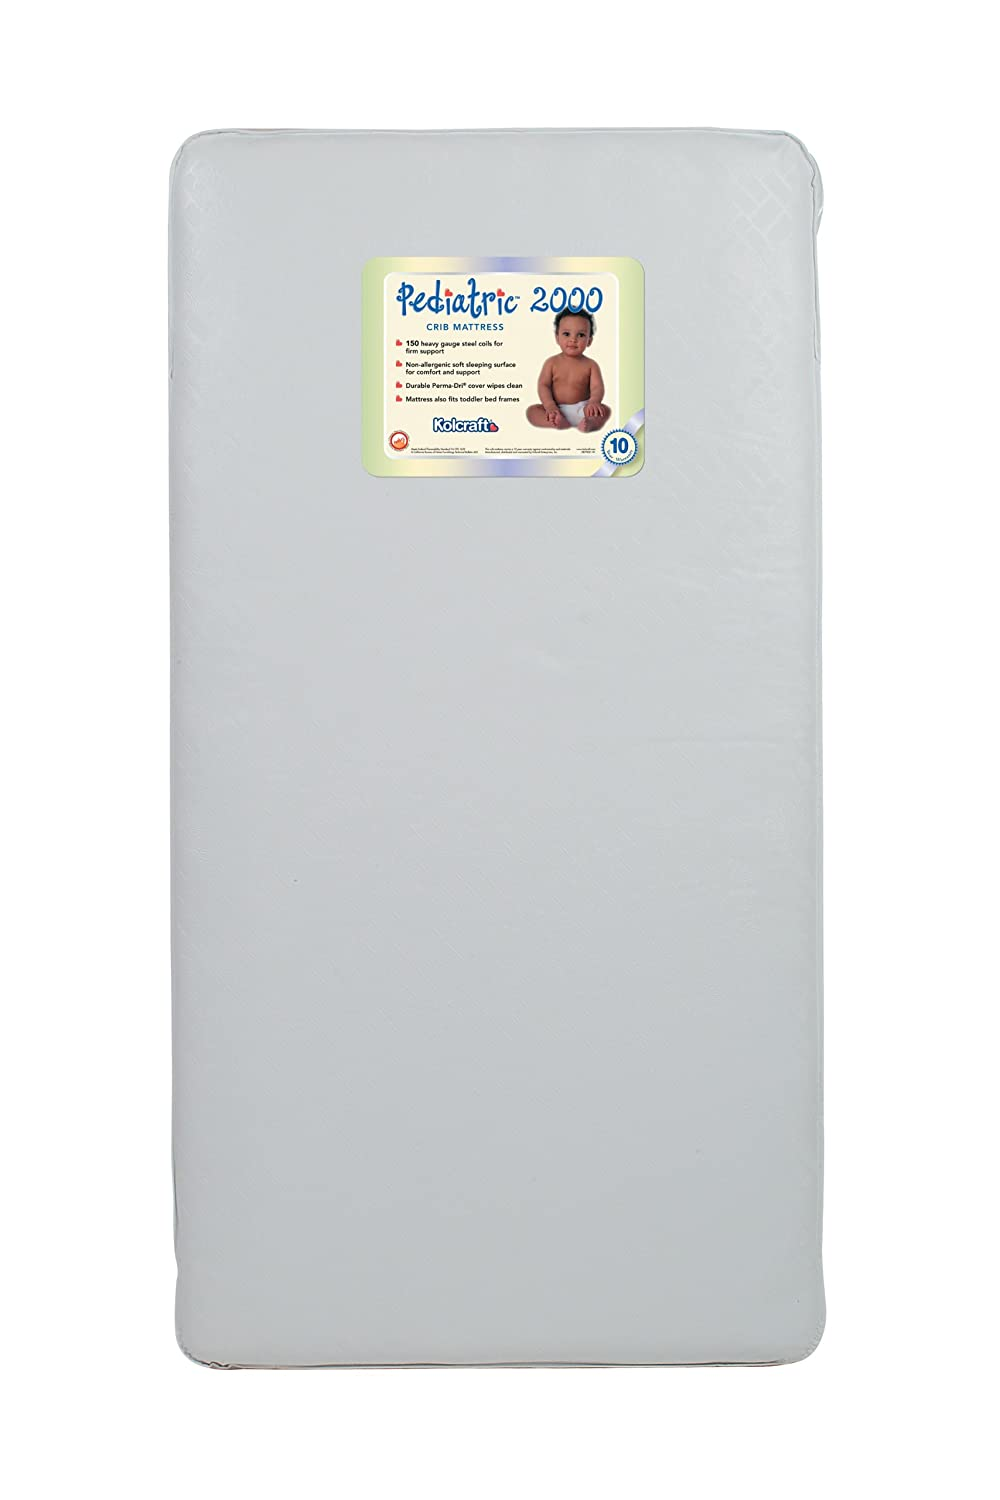 Kolcraft Pediatric 2000 Mattress